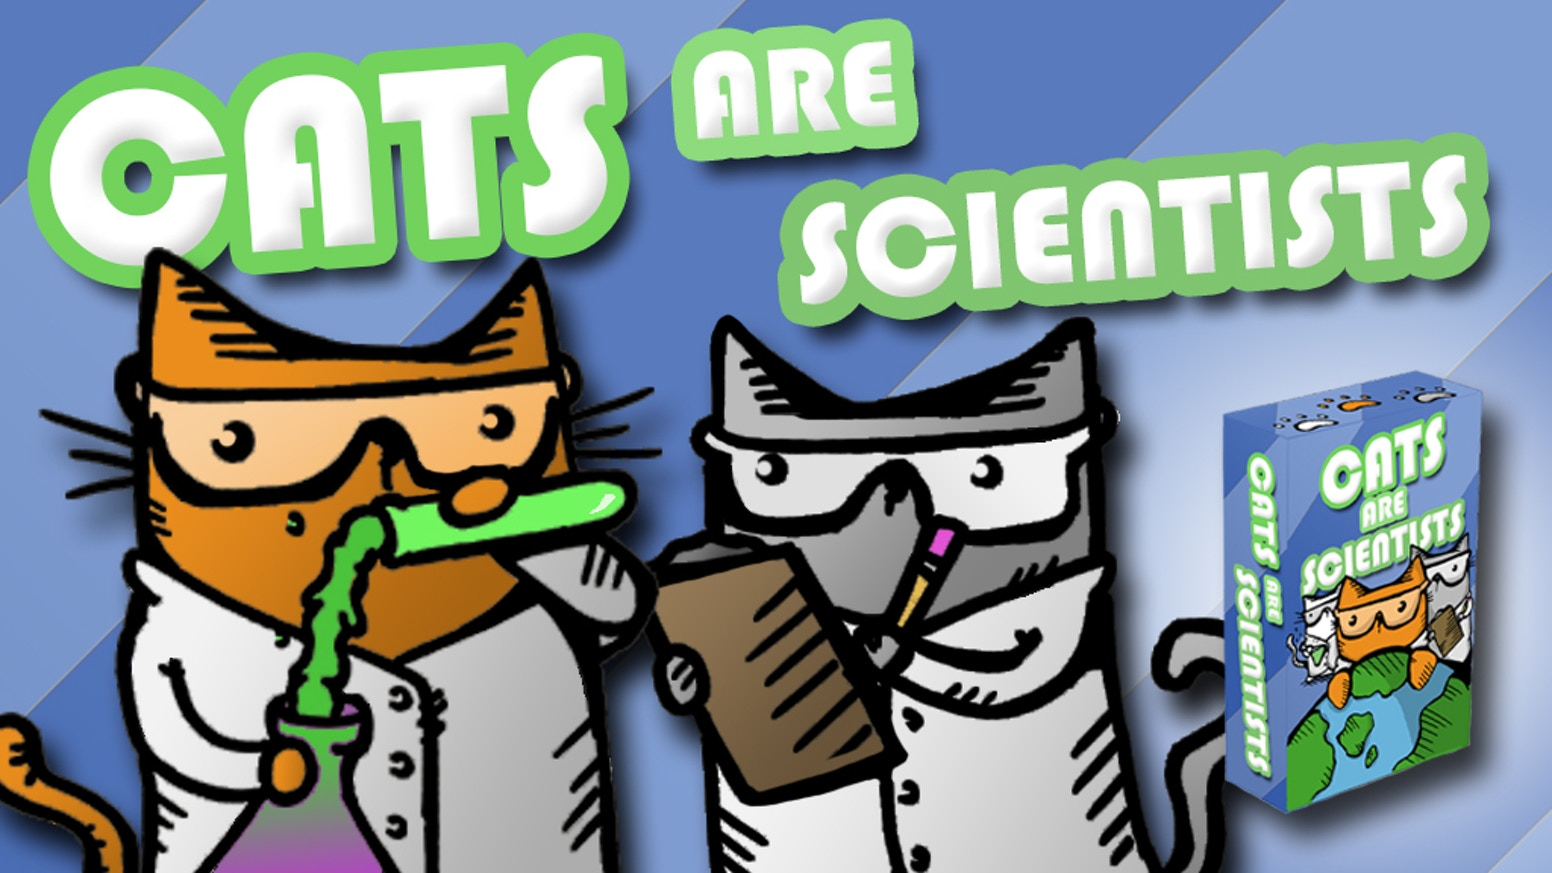 Cats are Scientists